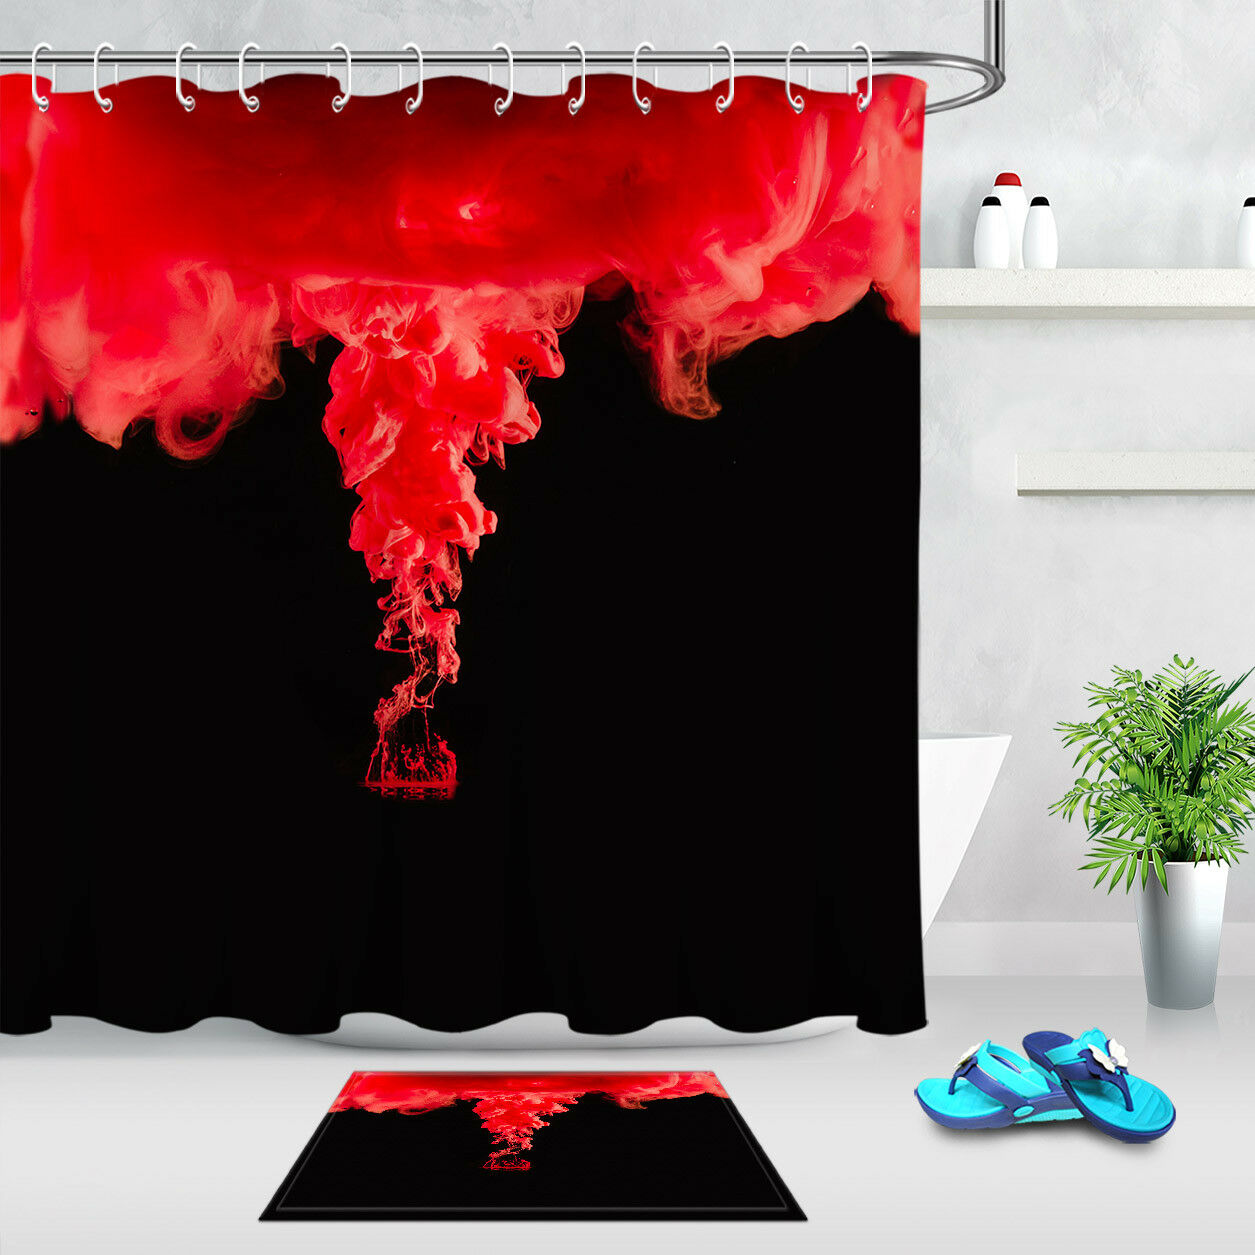 Abstract Red And Black Shower Curtain Liner Waterproof Fabric